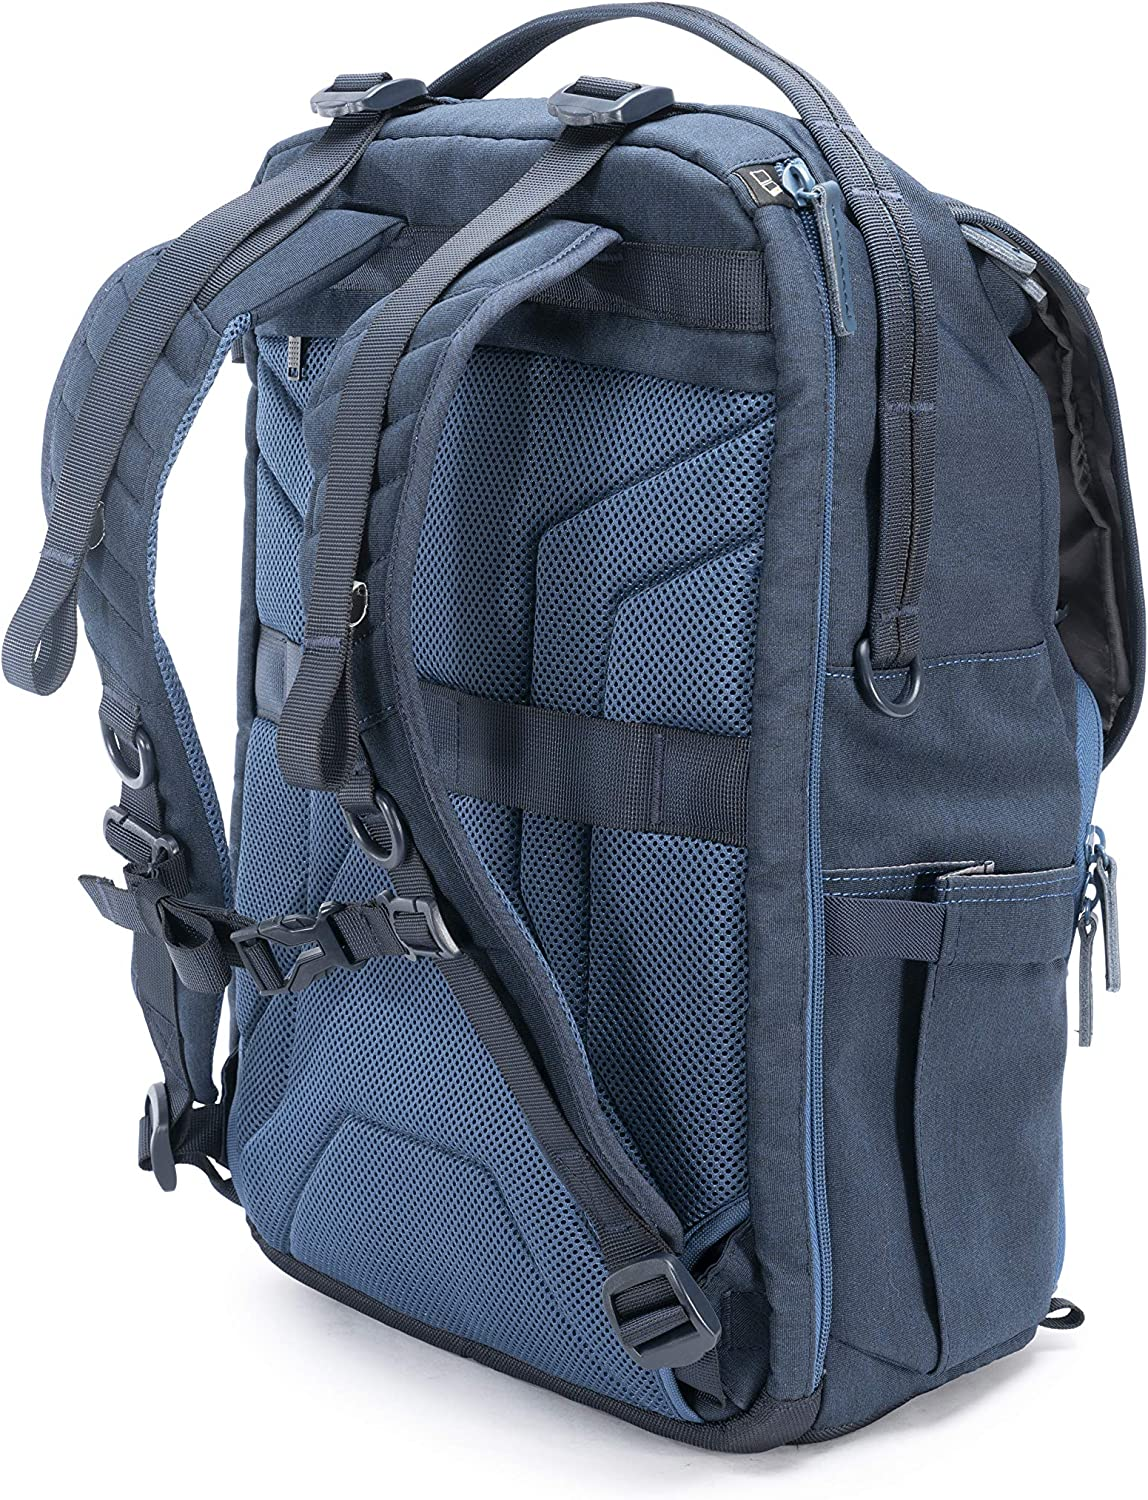 Navy Vanguard VEO RANGE41M NV Daypack for Mirrorless//CSC Camera or Small Drone